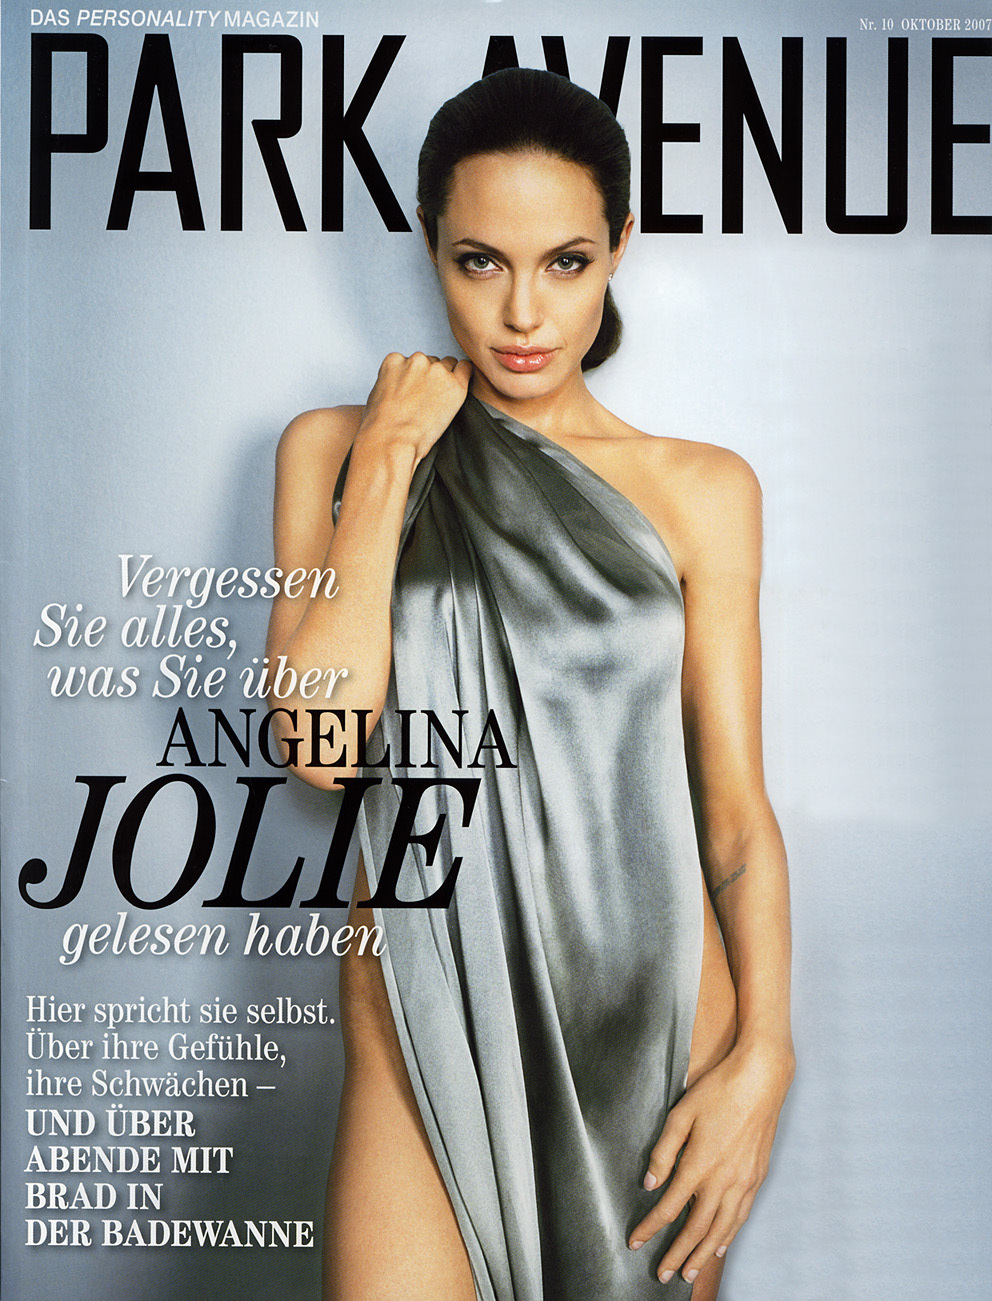 Angelina jolie Magazine covers HD Wallpaper